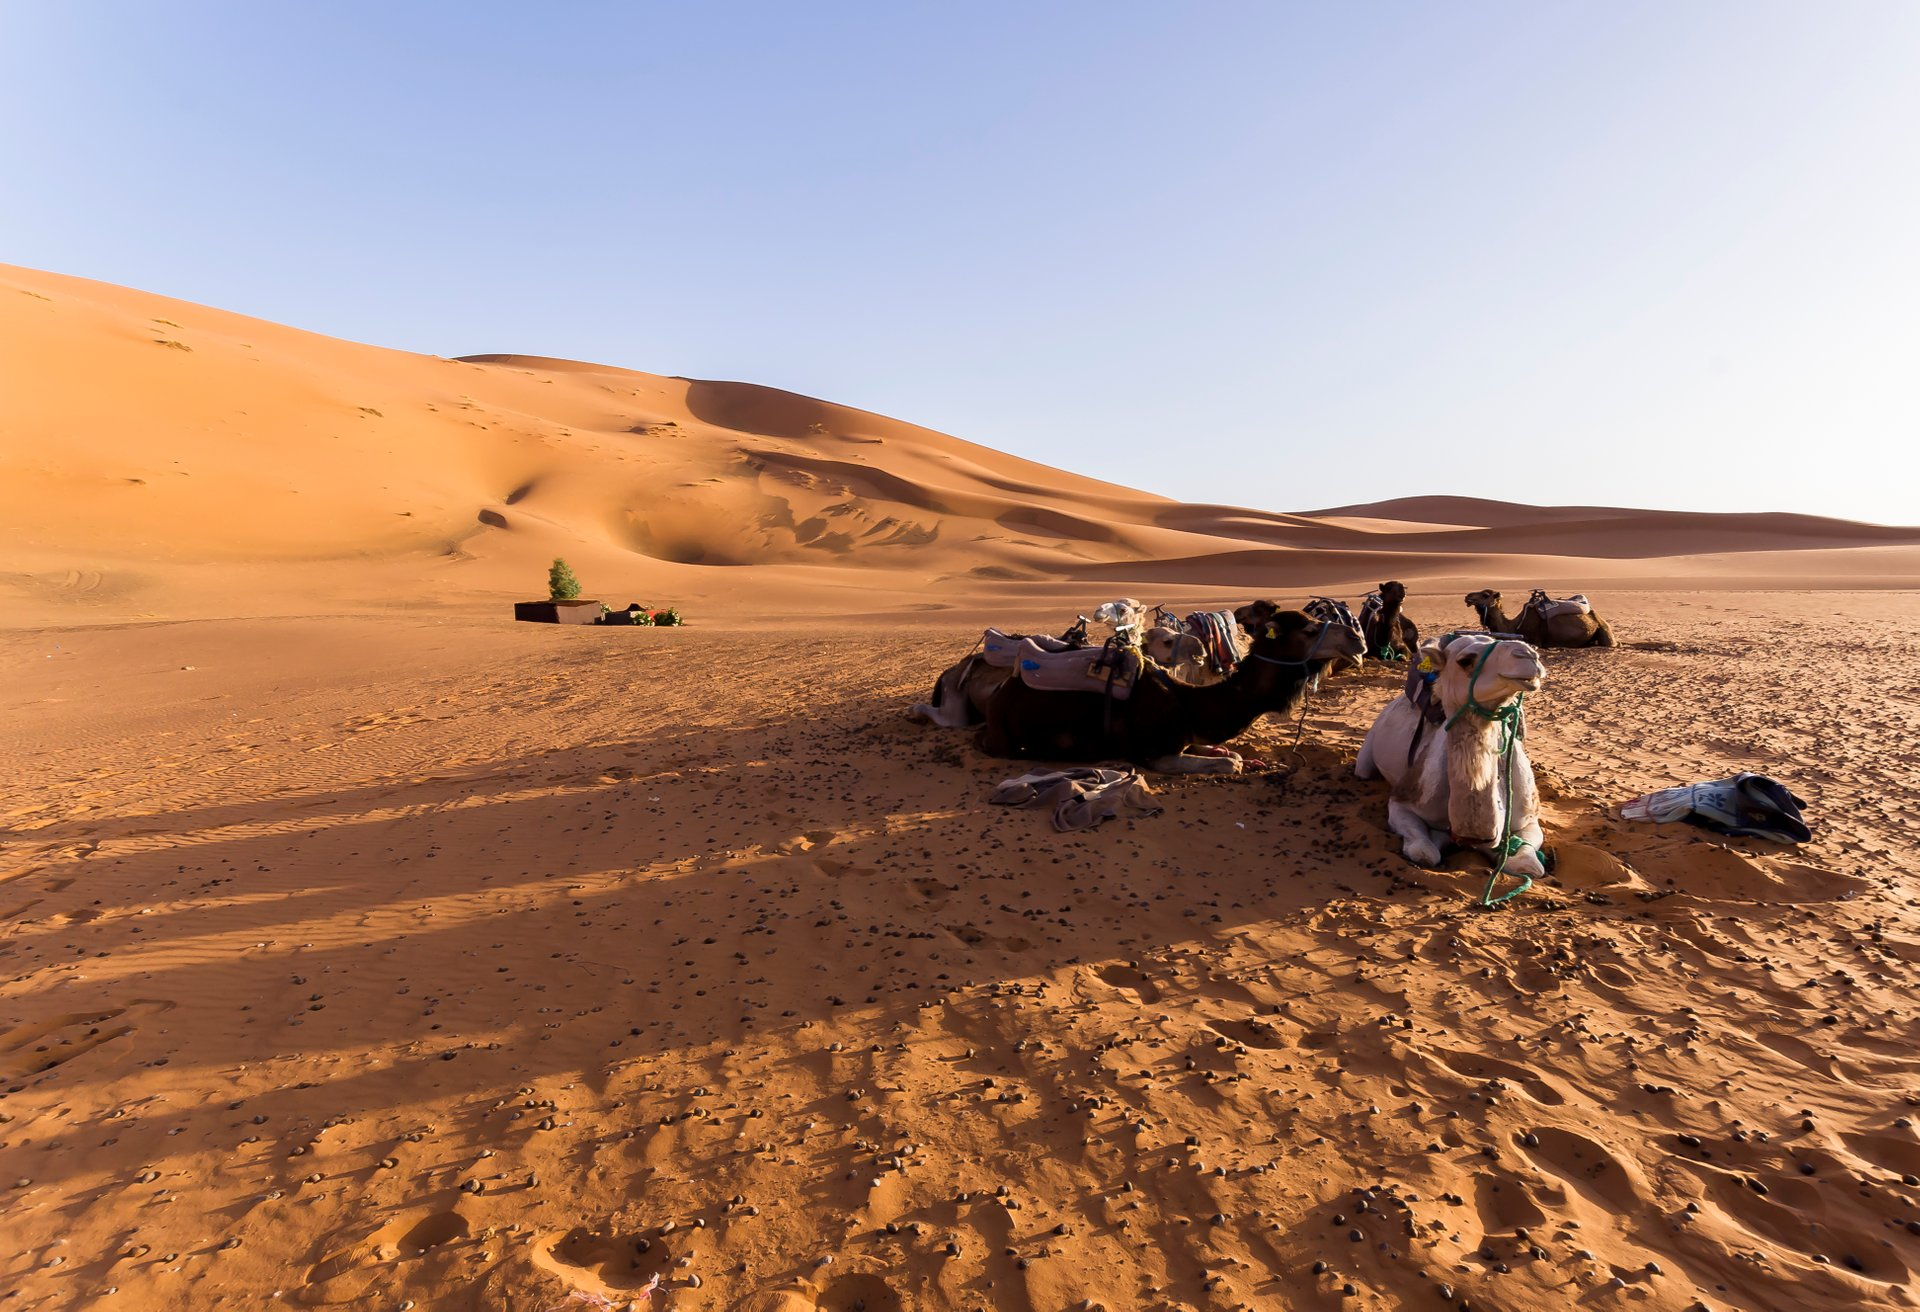 Camels waiting for breakfast, Erg Chebbi, Morocco 2020